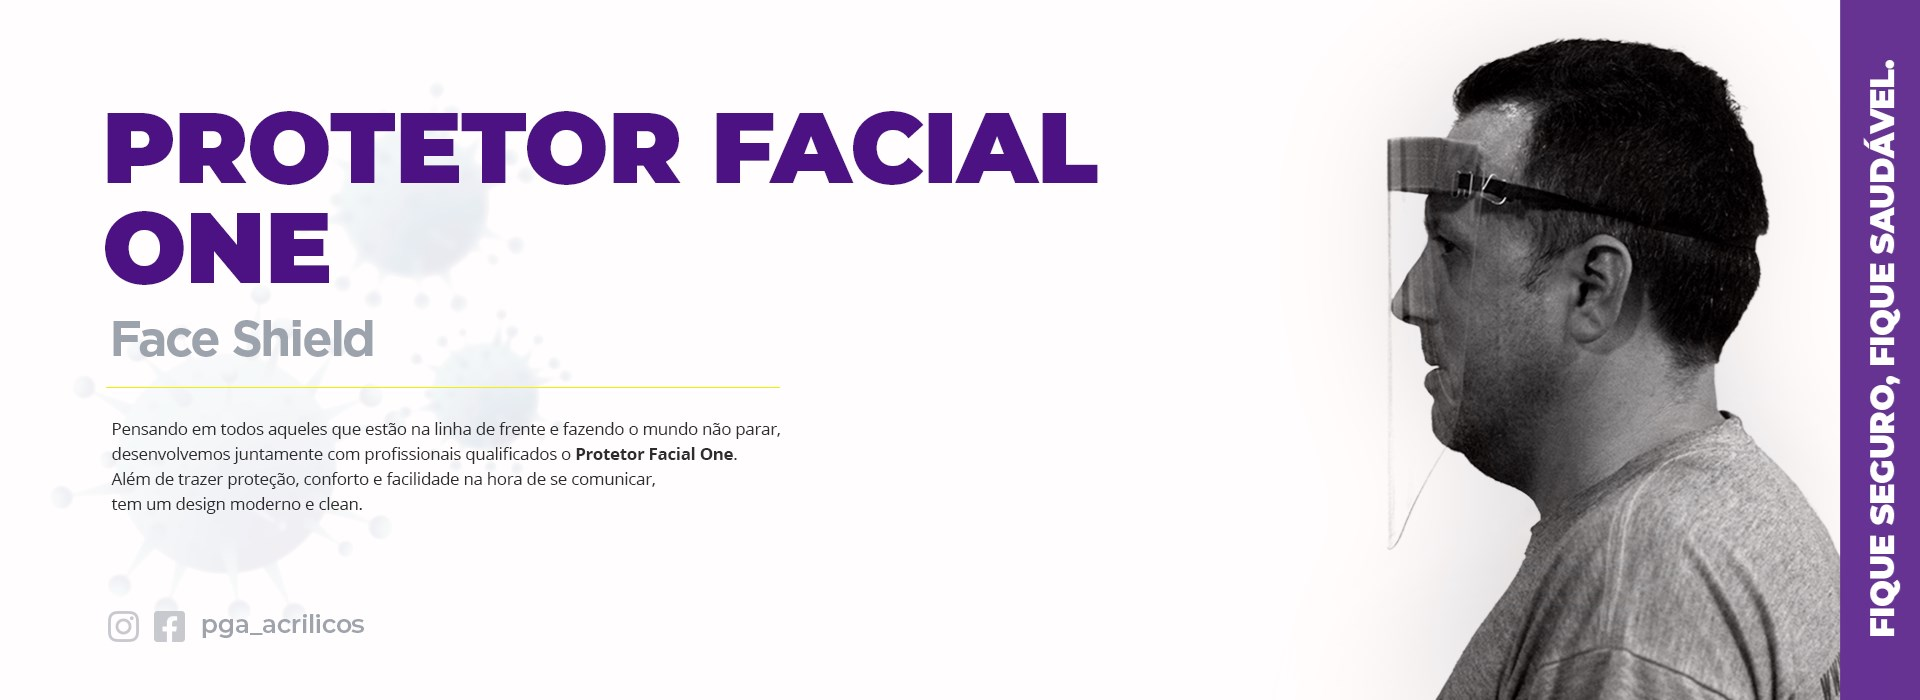 banner-protetor-facial-one-pgaacrilicos-face-shield